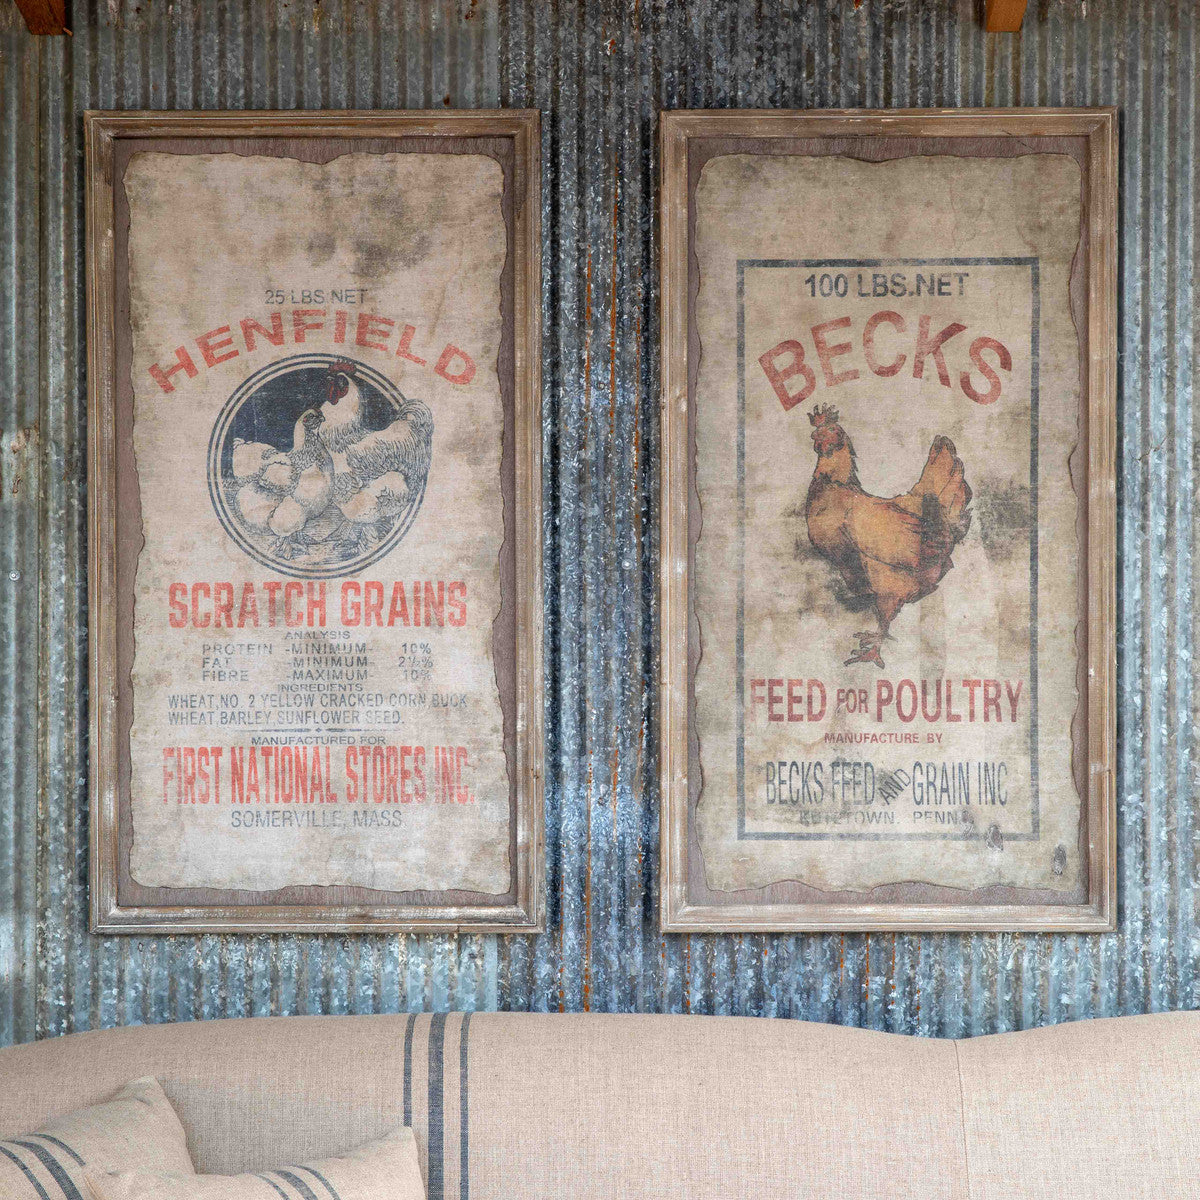 Framed Becks Poultry Seed/Henfield Signs, 2 Assorted Styles